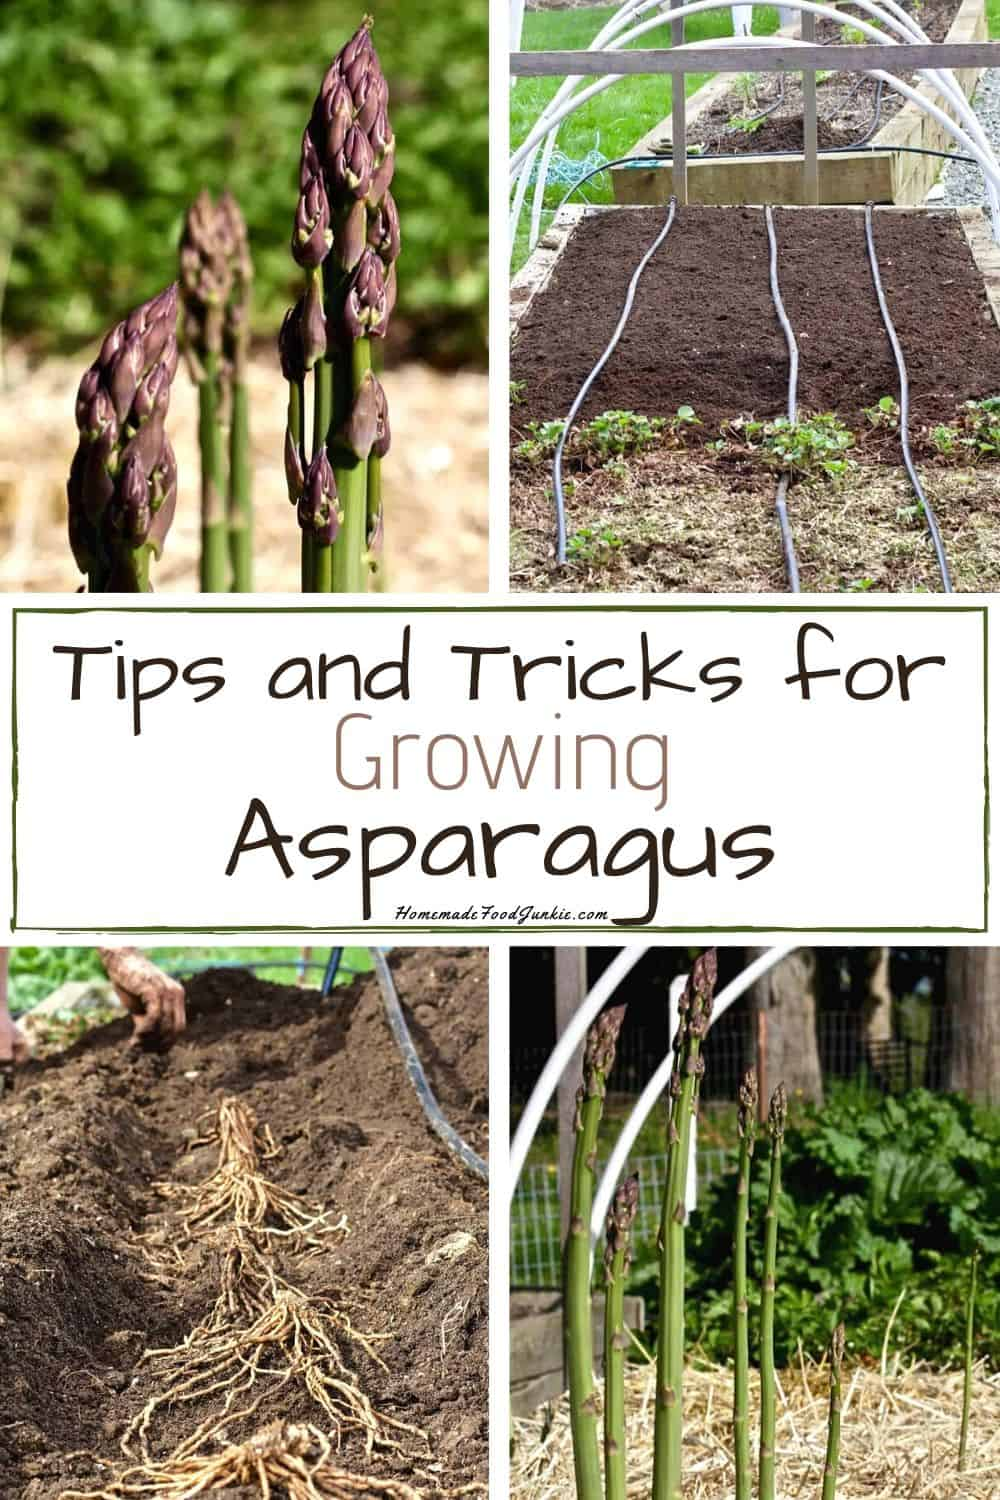 Tips and tricks for growing asparagus-pin image